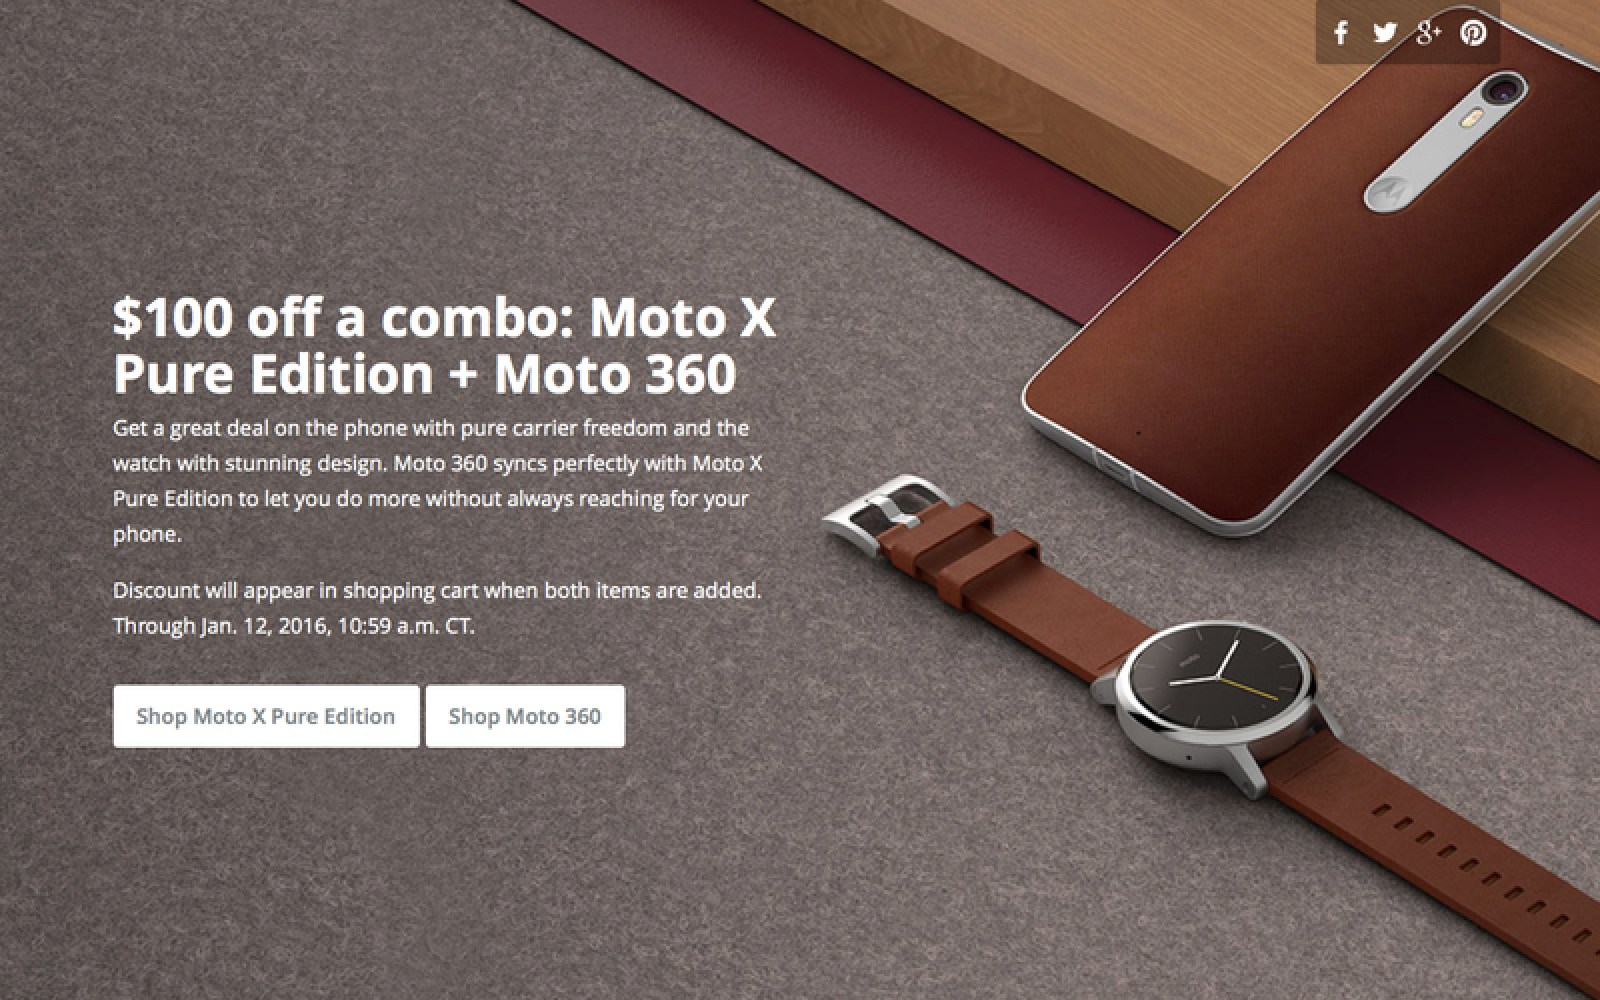 Motorola offering $100 discount when you purchase new Moto X Pure and Moto 360 together